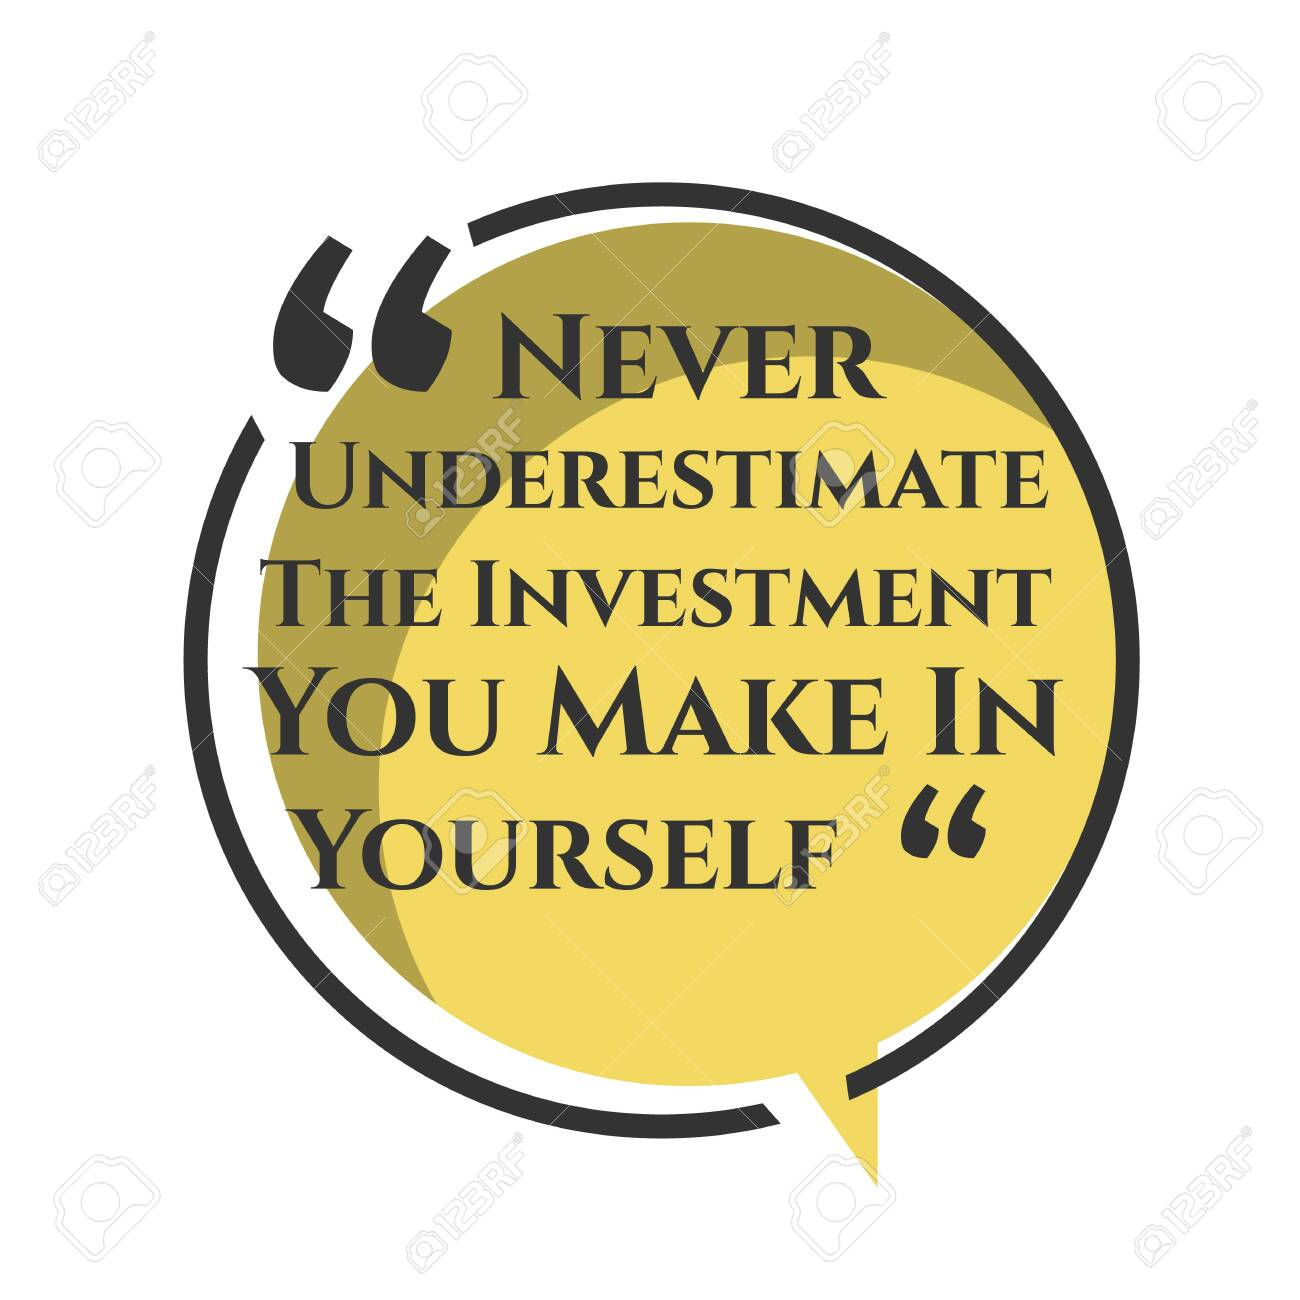 motivational inspiring positive quotes. never underestimate the investment you make in yourself. motivation quote vector typography banner design concept on circle bubble chat shape background - 146500810